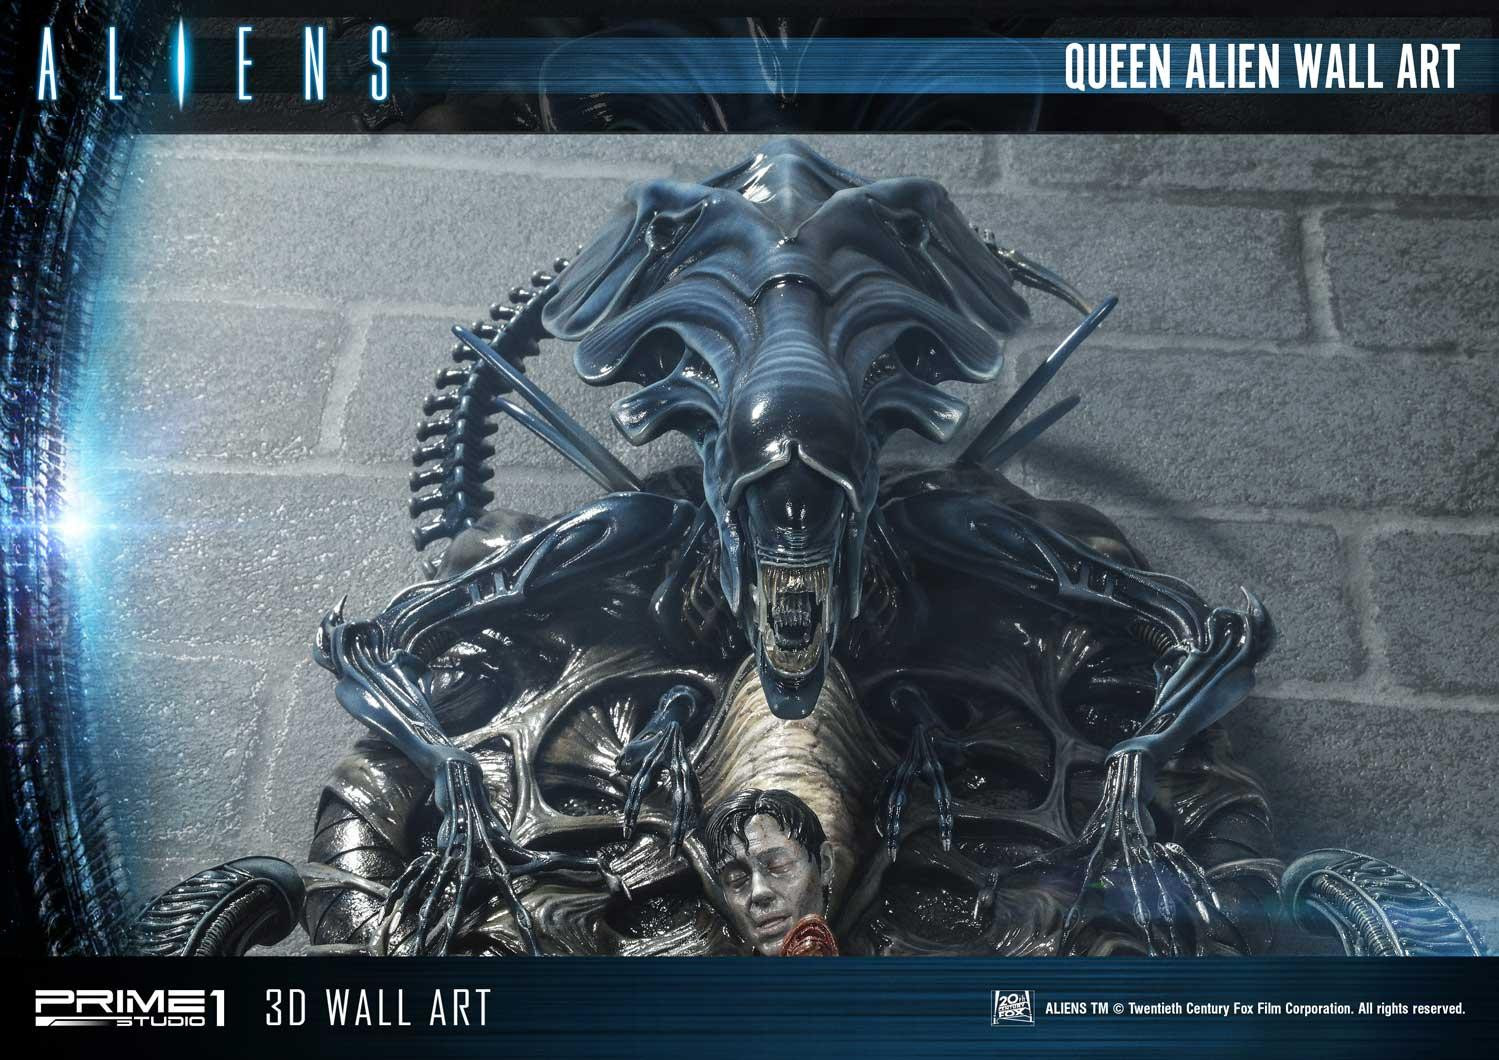 Alien Queen Wall Art Unveiled by Prime 1 Studio Bursts with Detail